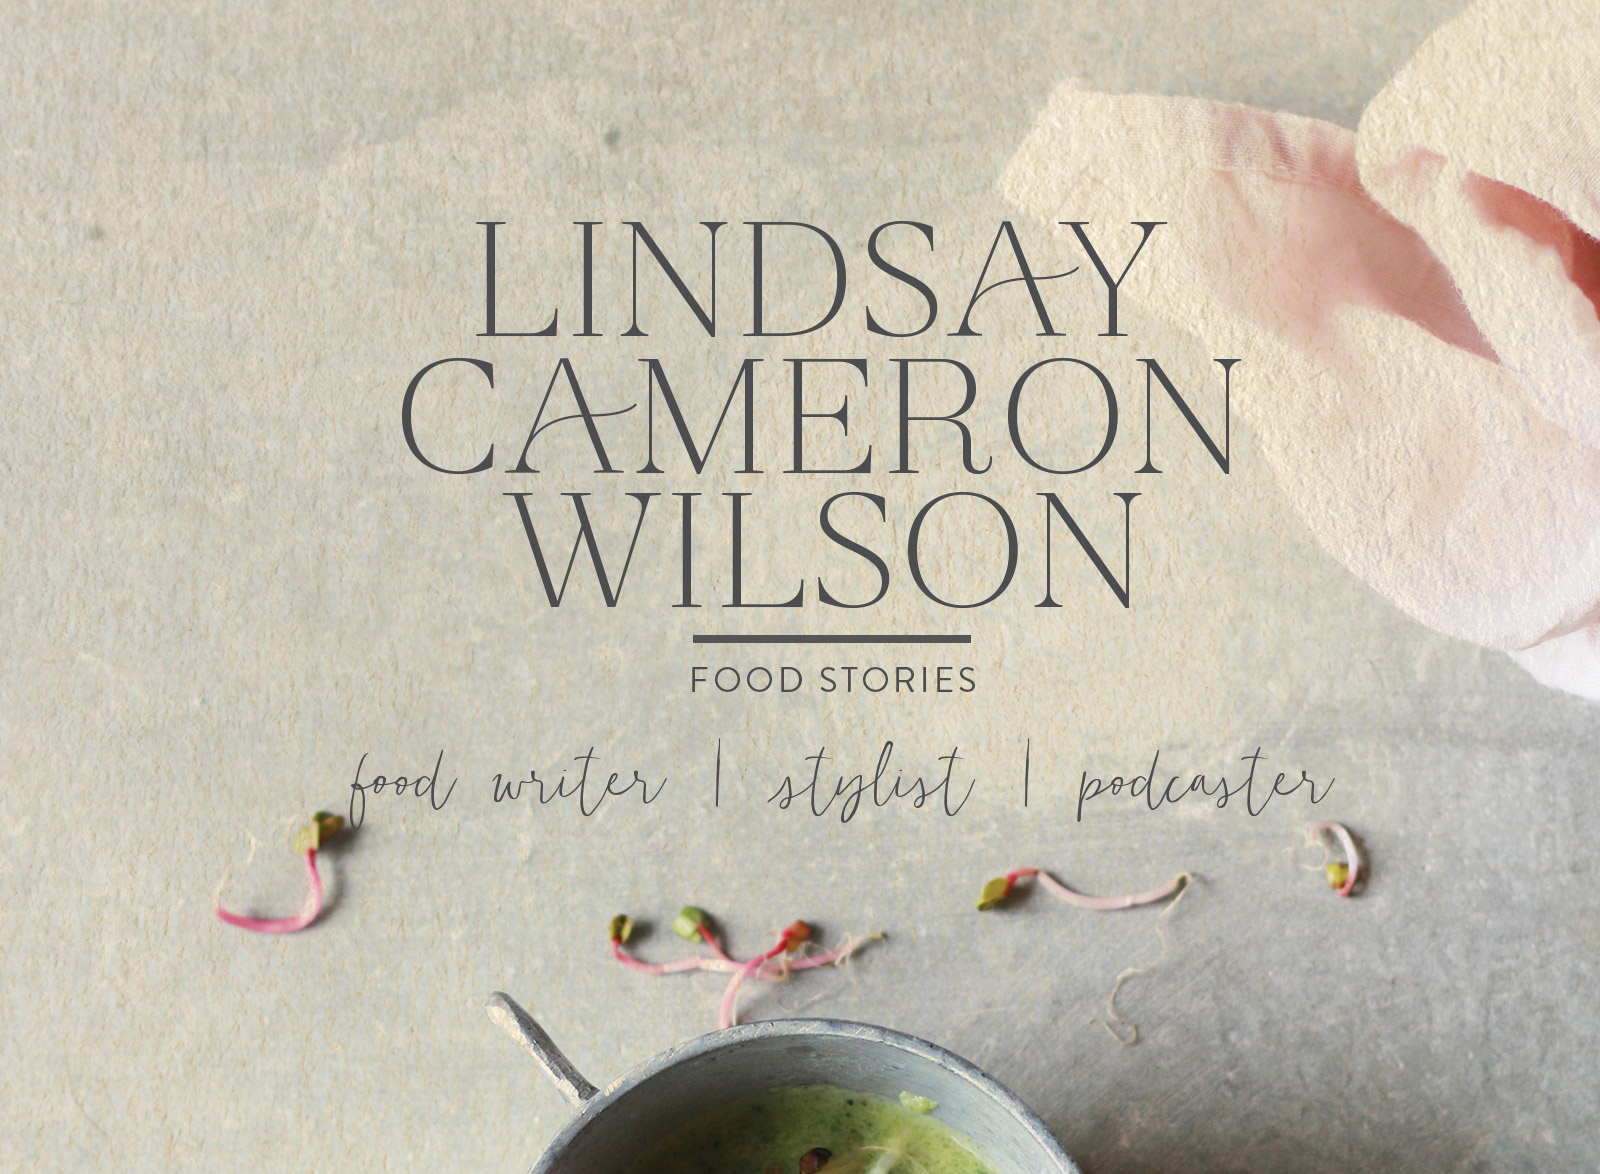 Food podcaster Lindsay Cameron Wilson